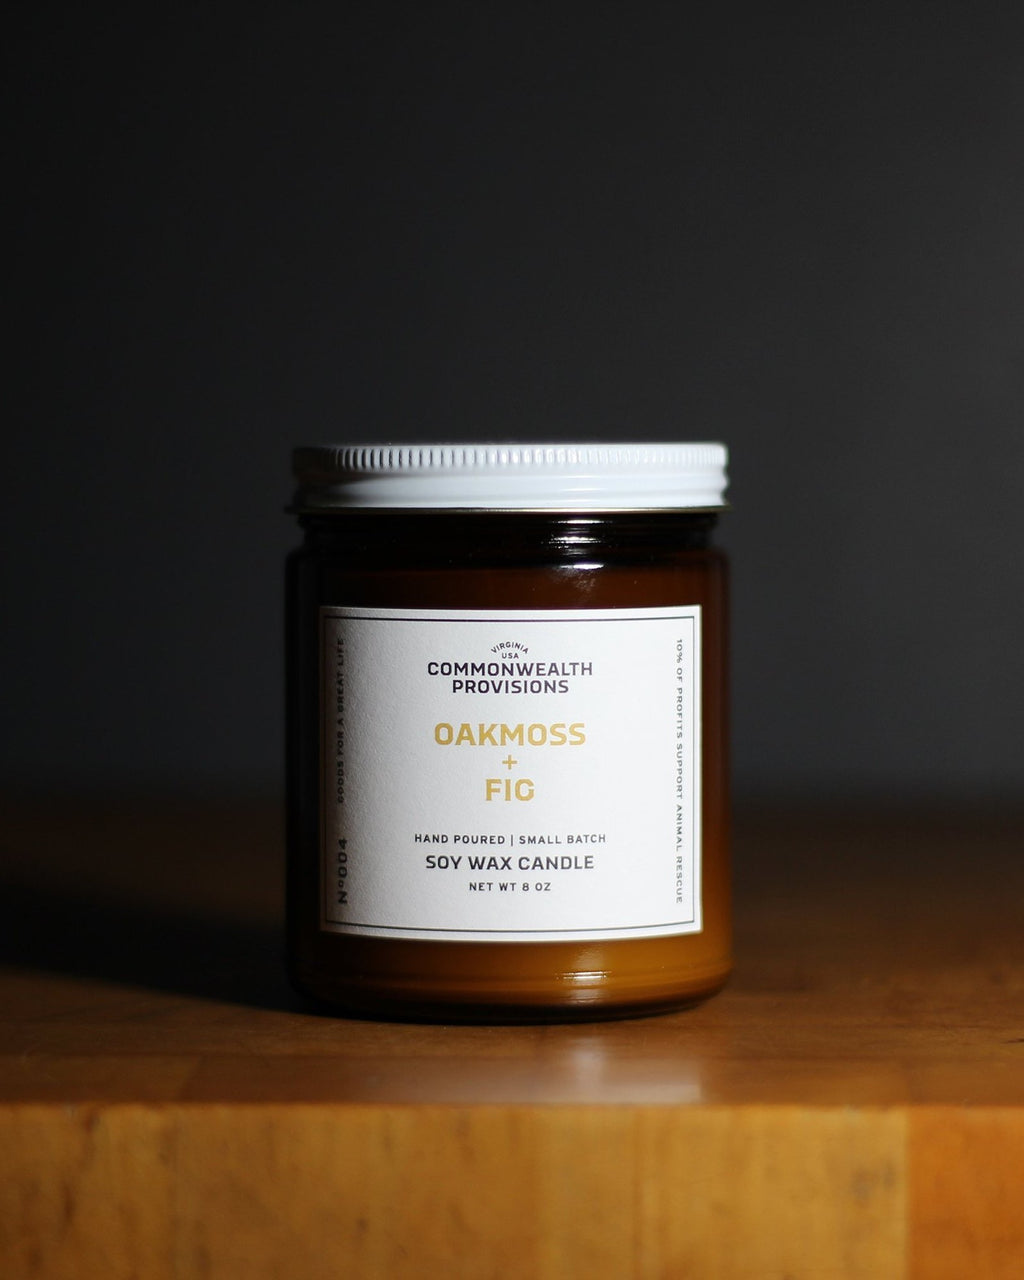 Commonwealth Provisions - Oakmoss Fig Candle